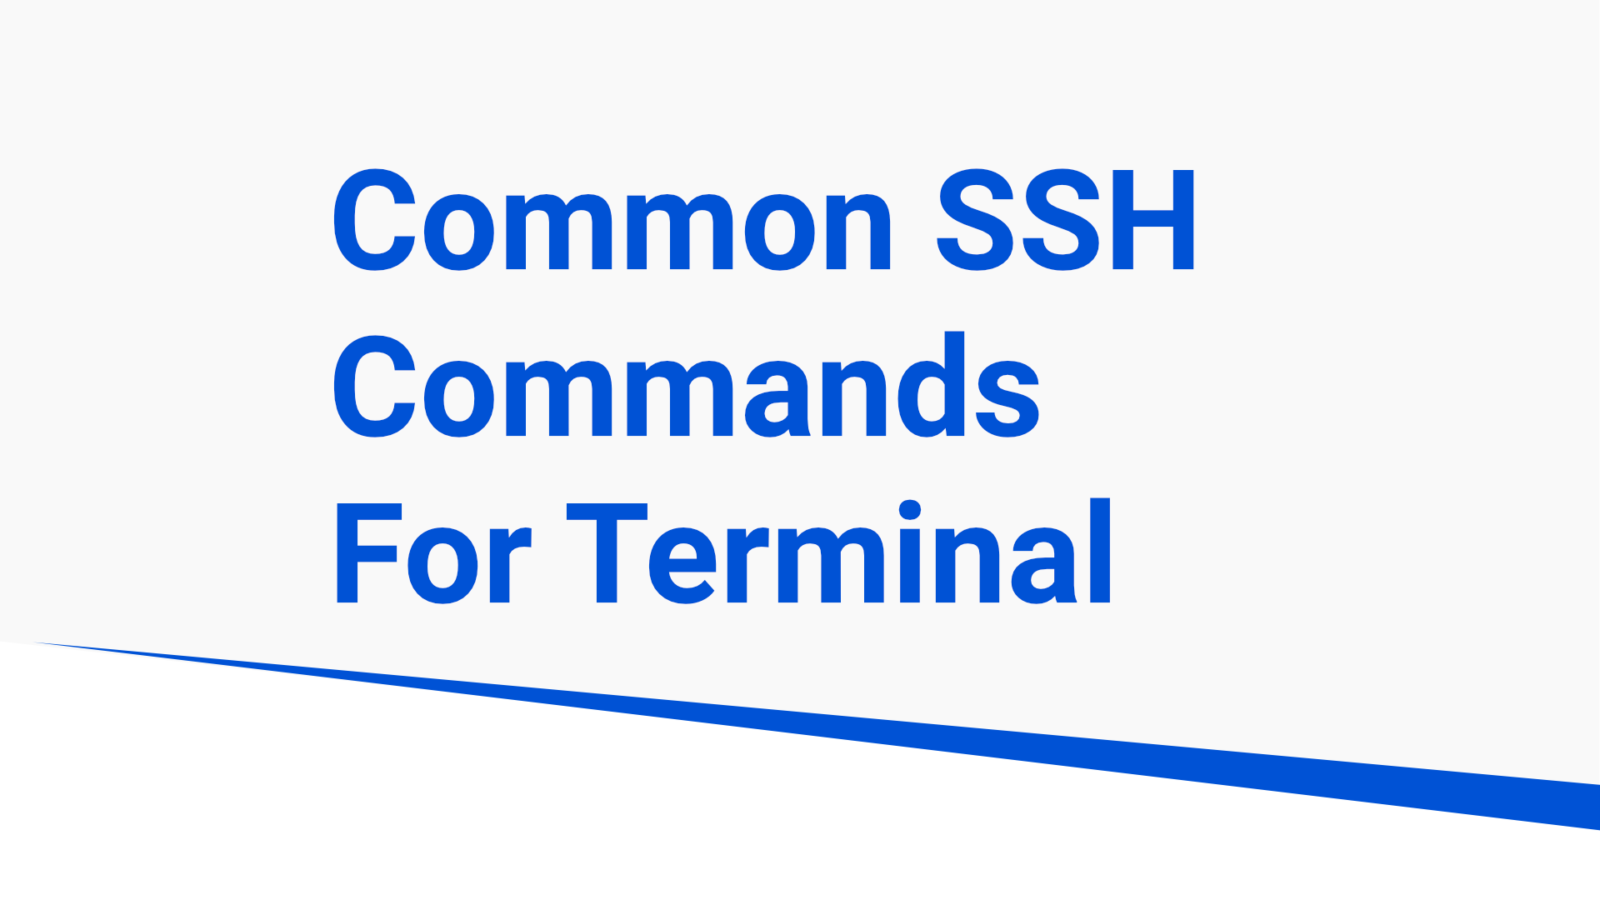 common ssh commands